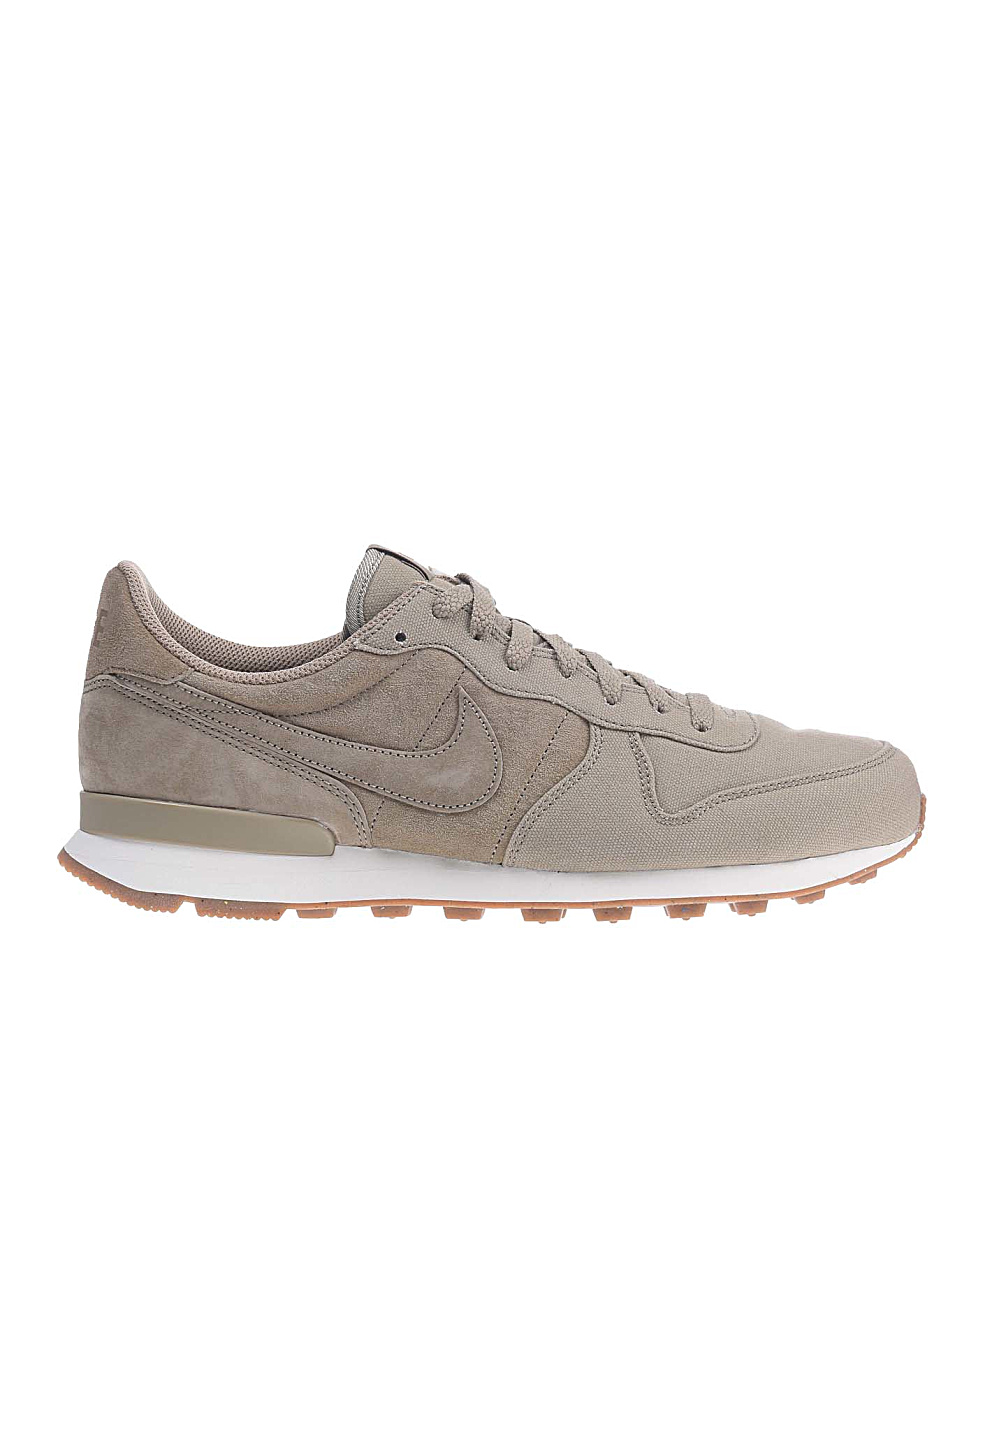 d4553f18087 nike-sportswear-internationalist-premium-sneakers-men-beige.jpg